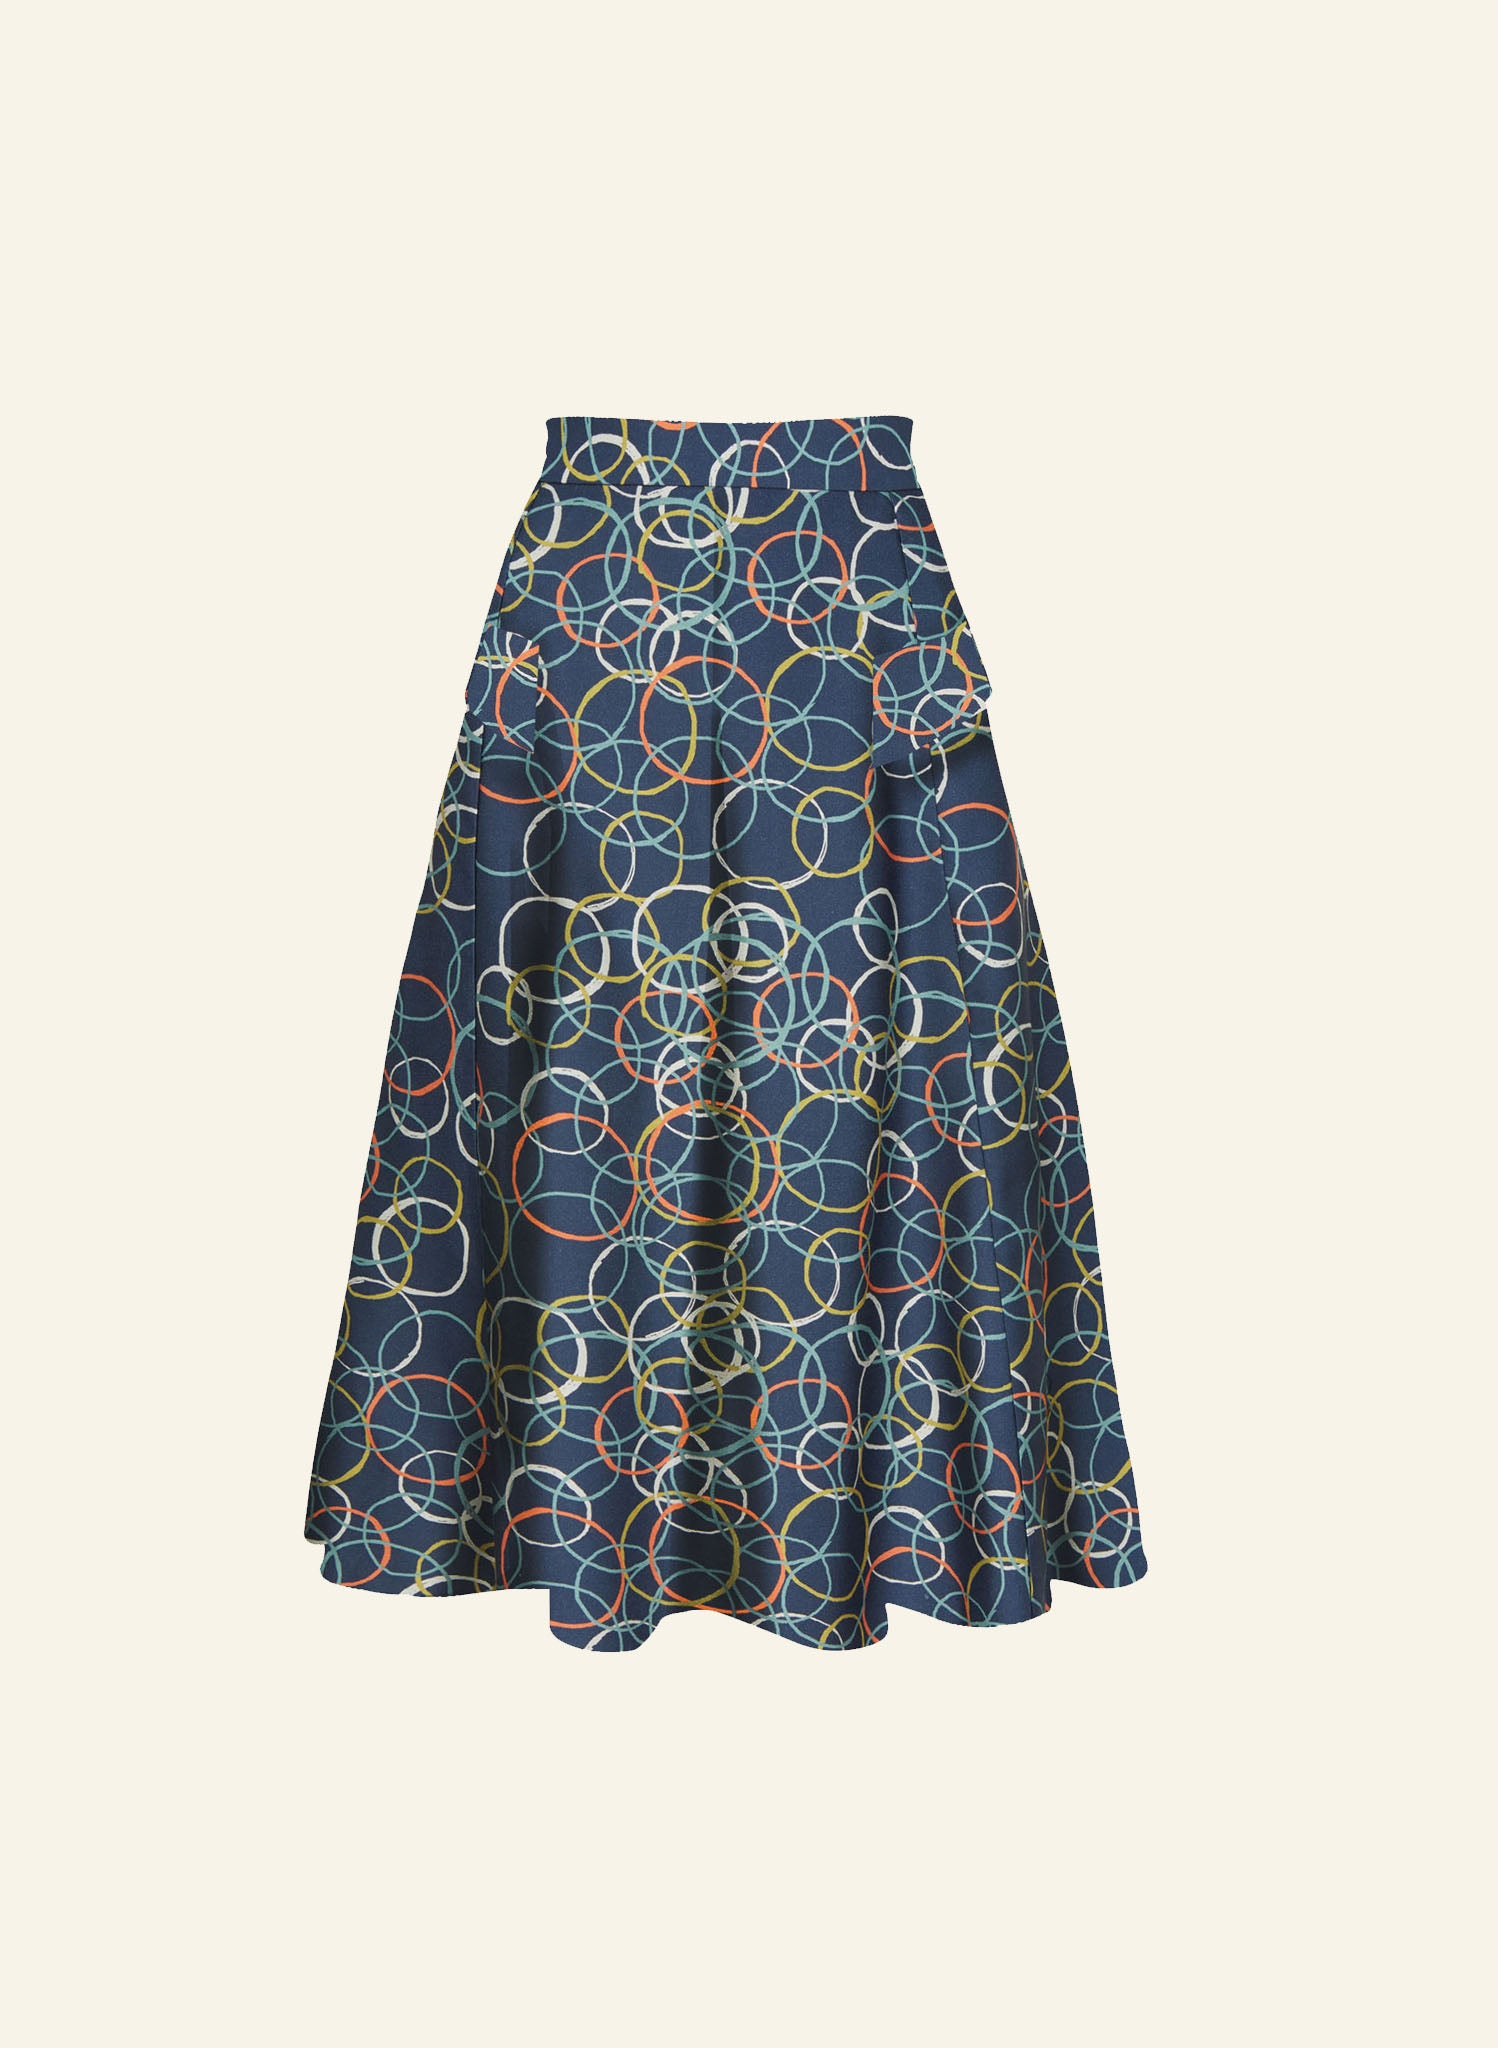 Veronica - Blue Atomic Skirt - 100% Tencel